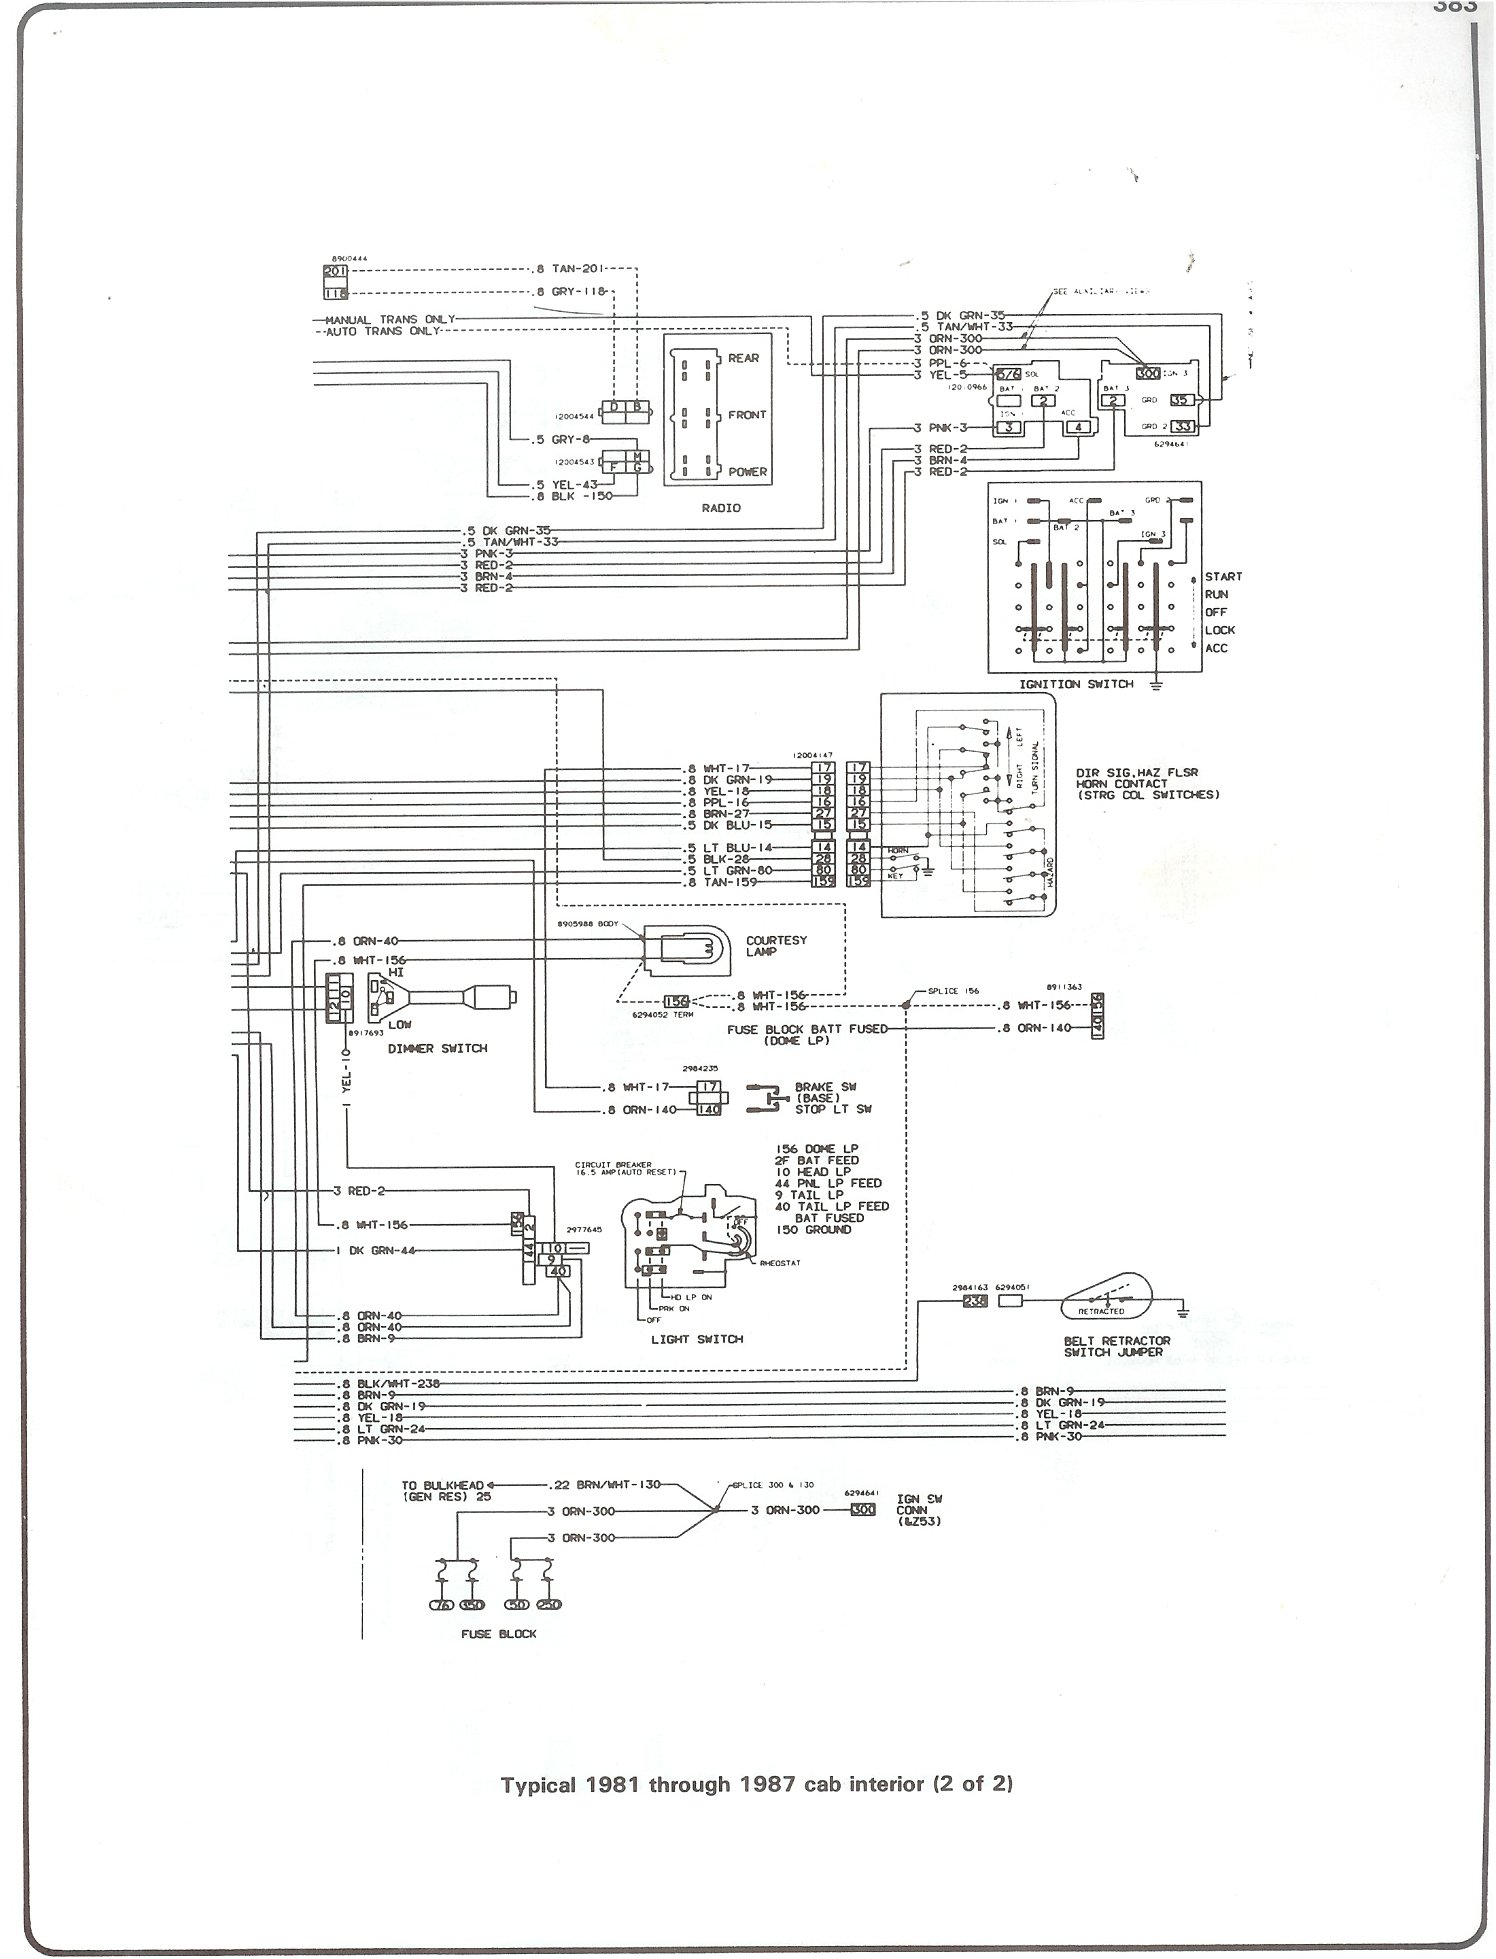 81 87_cab_inter_pg2 complete 73 87 wiring diagrams 1985 Chevy Alternator Wiring Diagram at pacquiaovsvargaslive.co